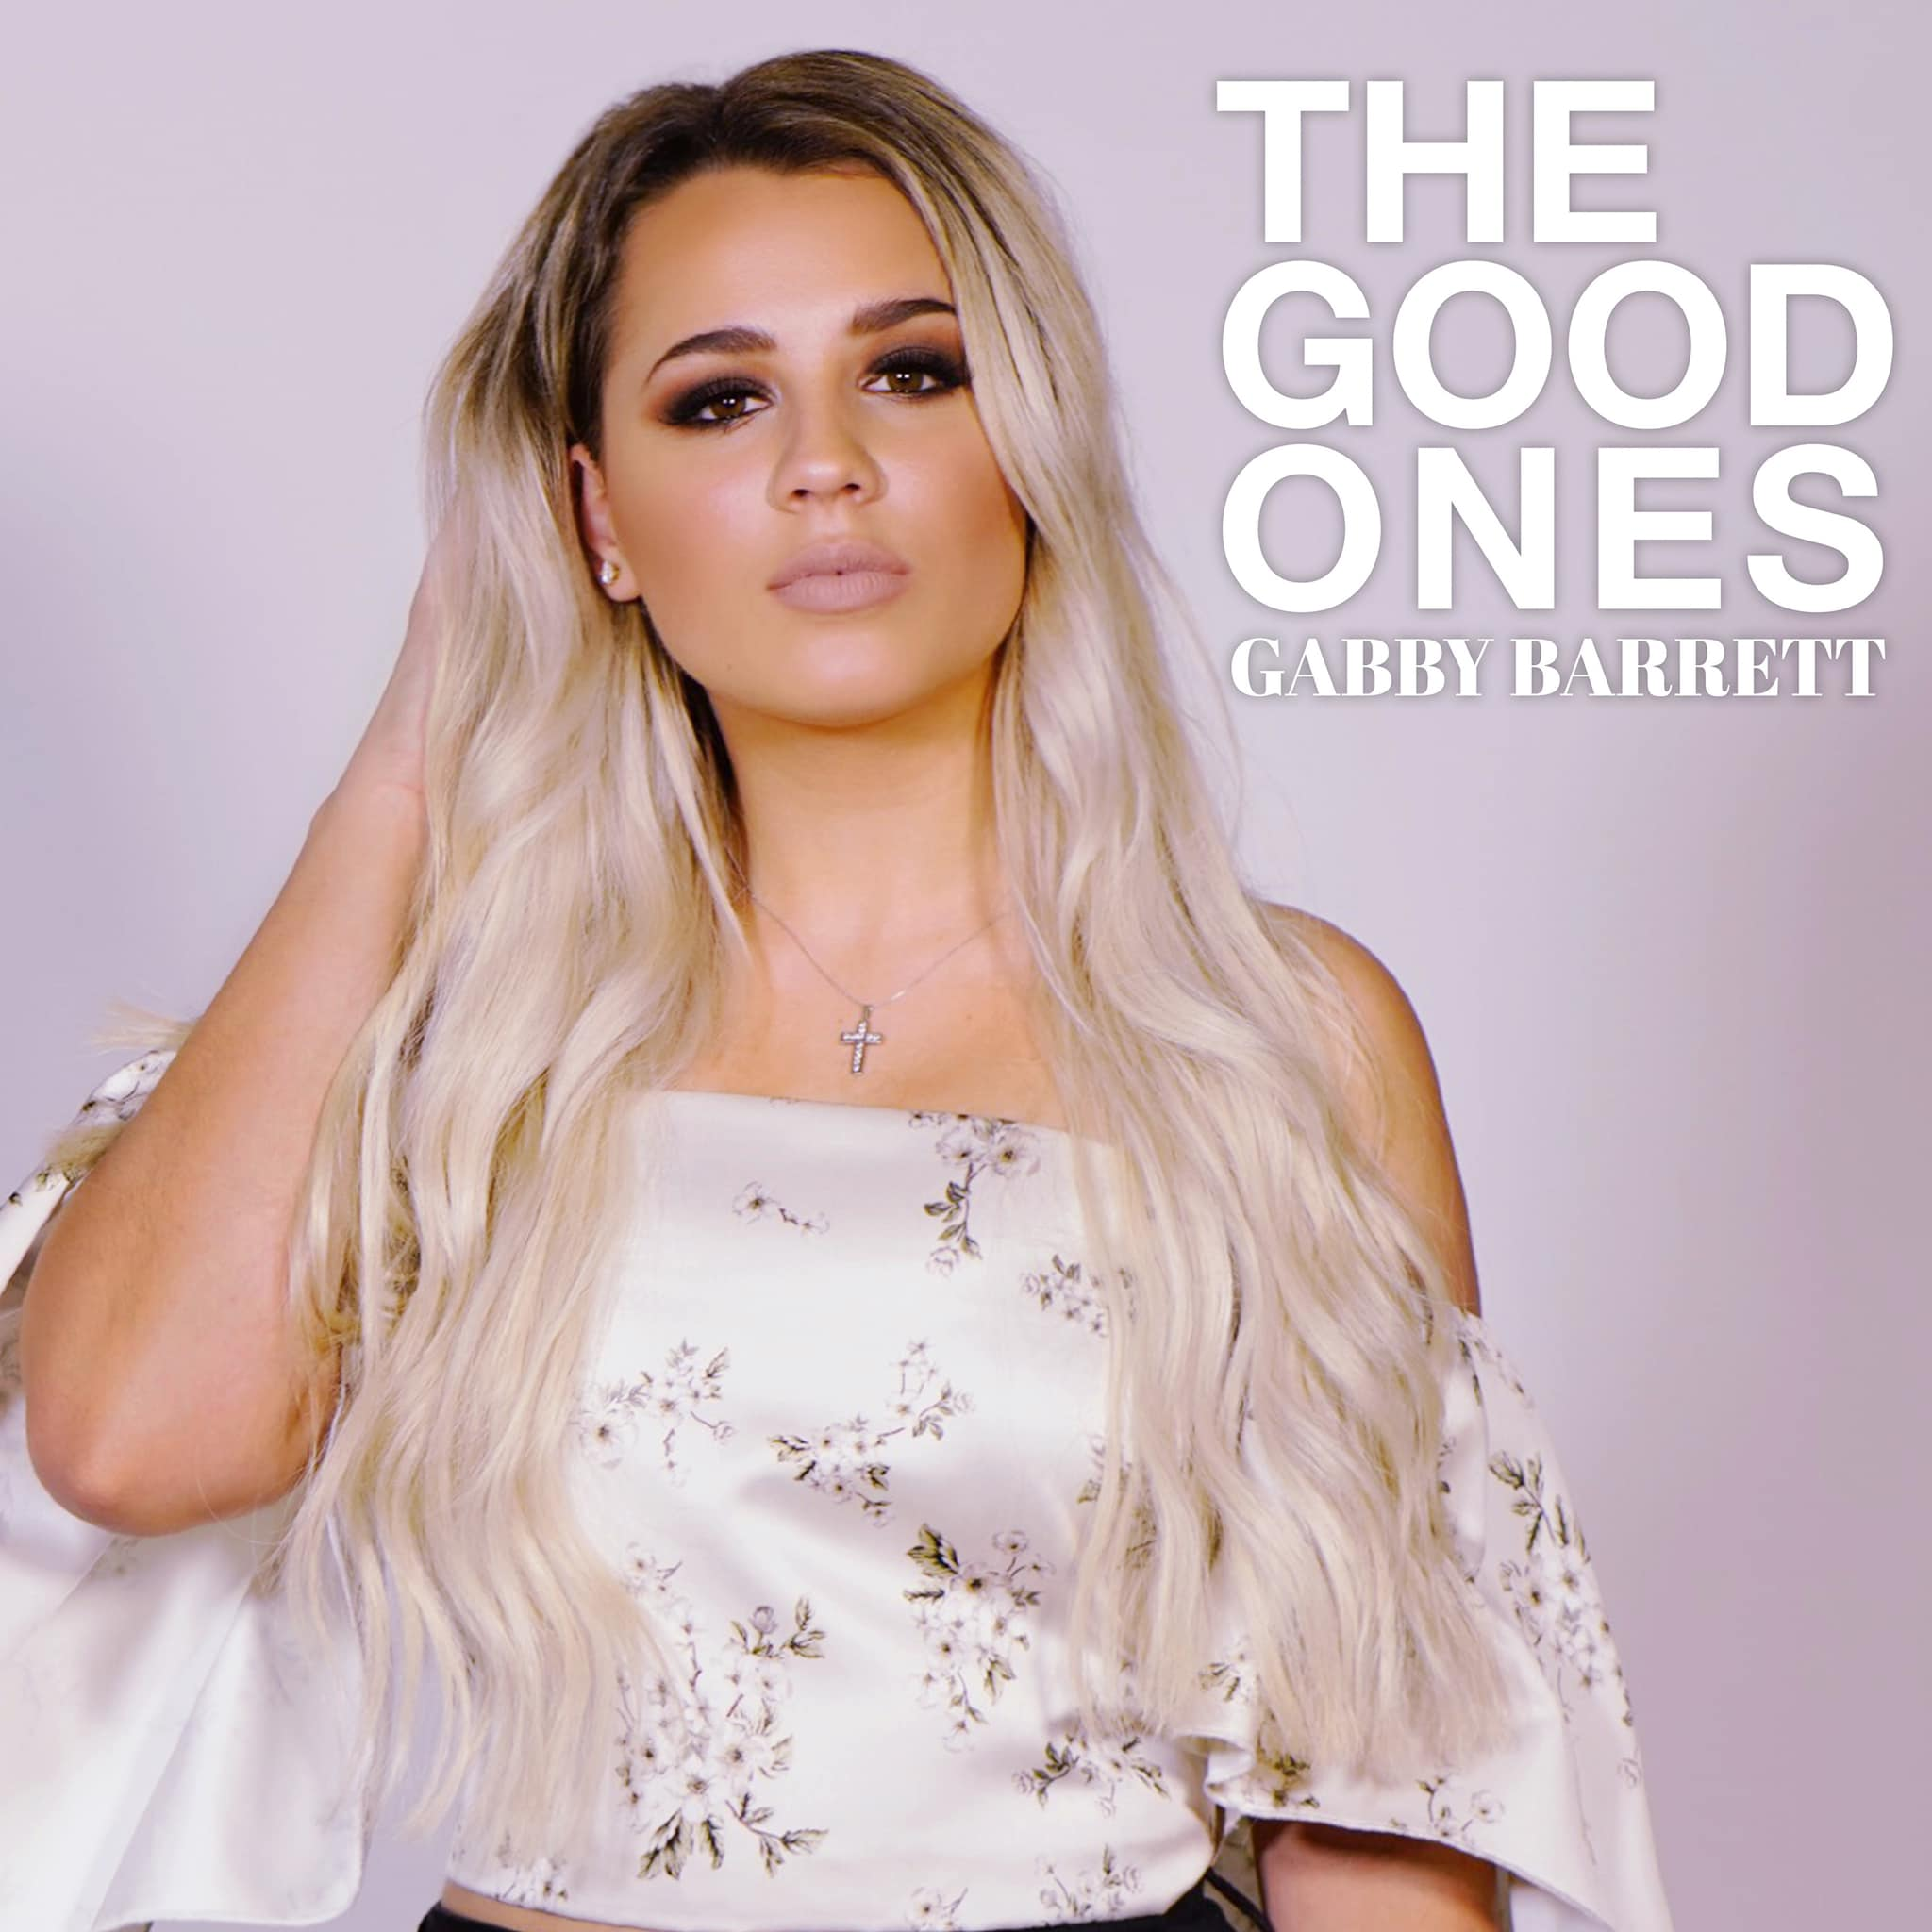 Gabby Barrett - The Good Ones